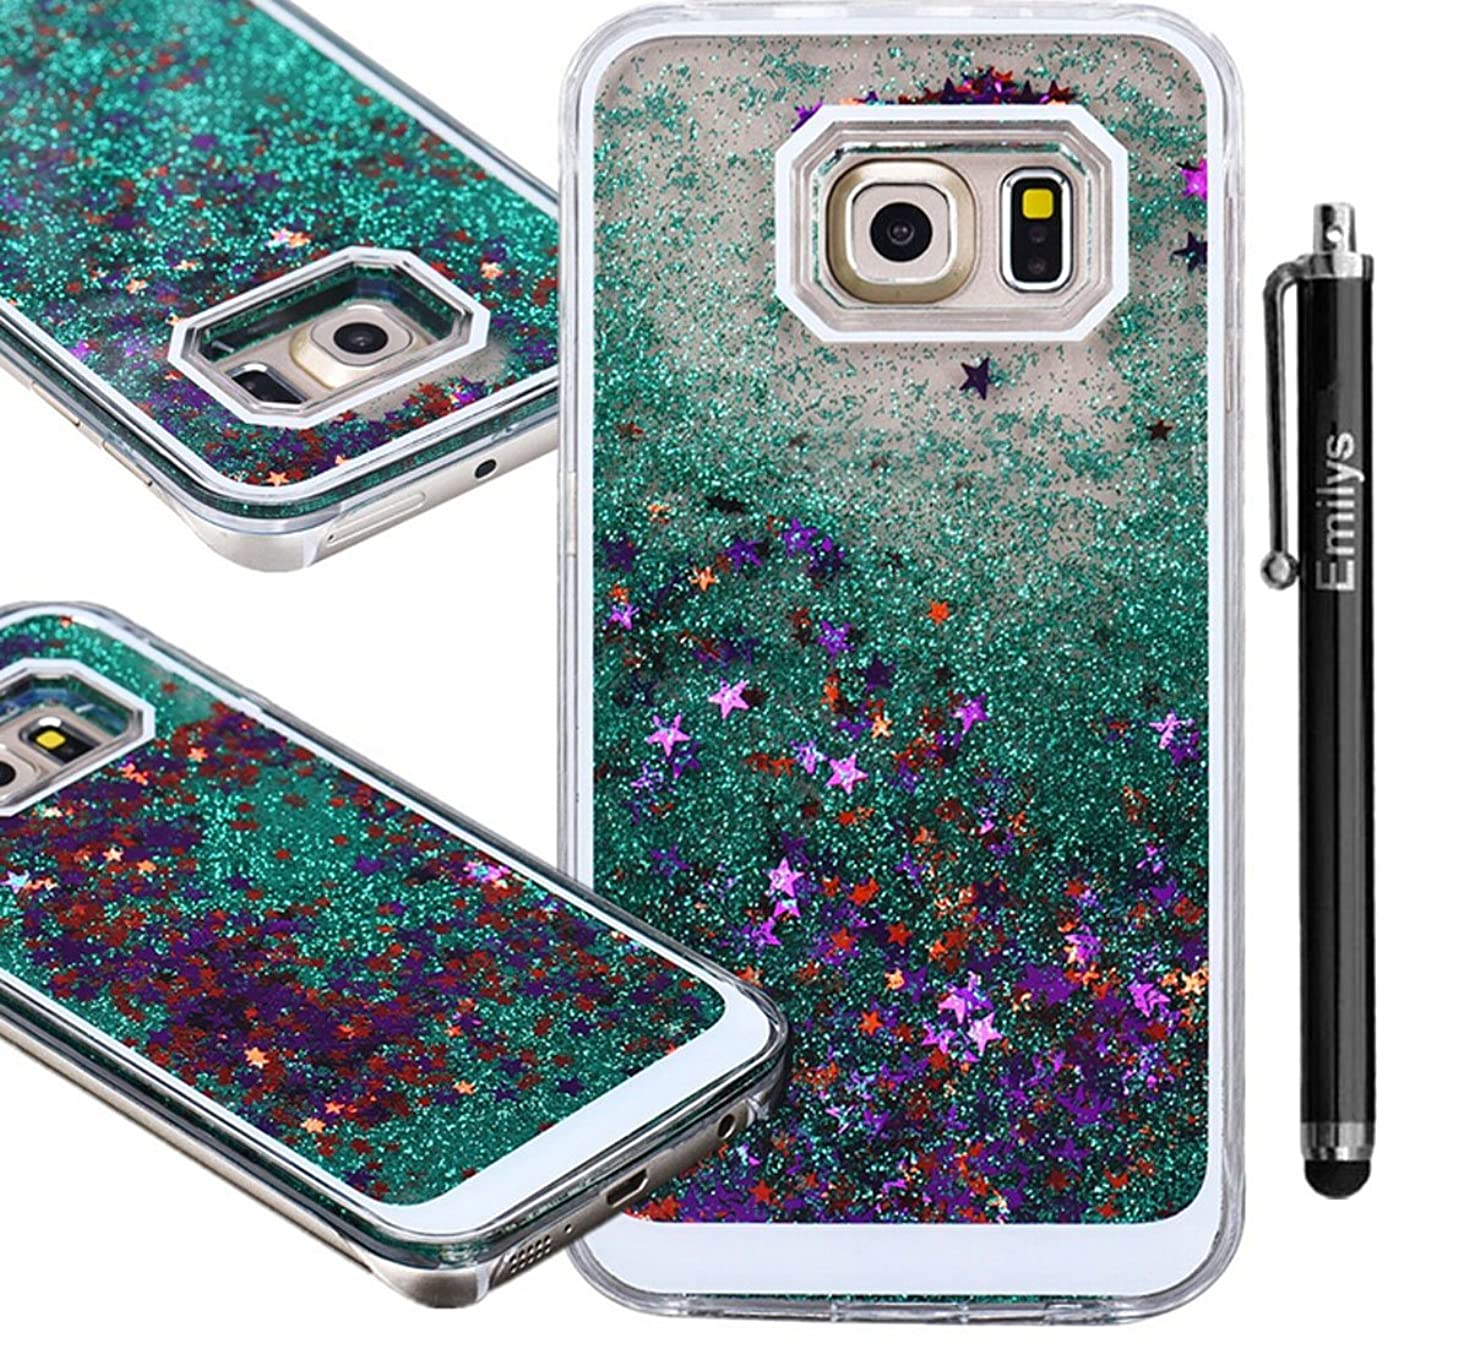 Emilys S6 Case, Samsung Galaxy S6 case, fashion style New Glitter Quicksand liquid star dynamic clear bling case Cover for Samsung Galaxy S6 G920F(Green)